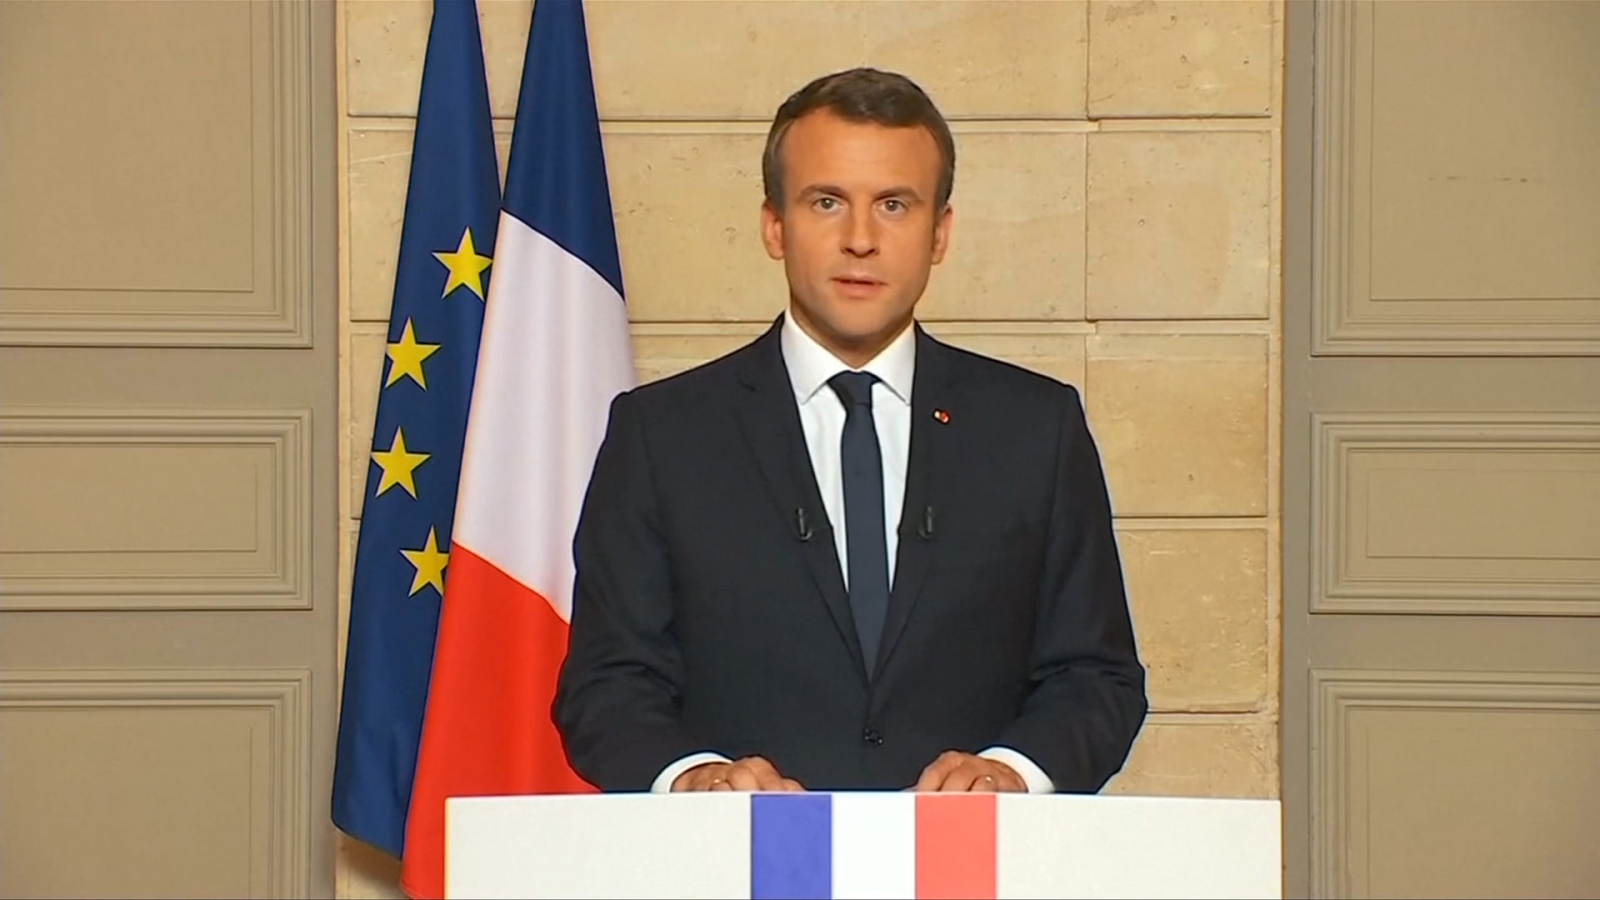 french-president-macron-make-our-planet-great-again